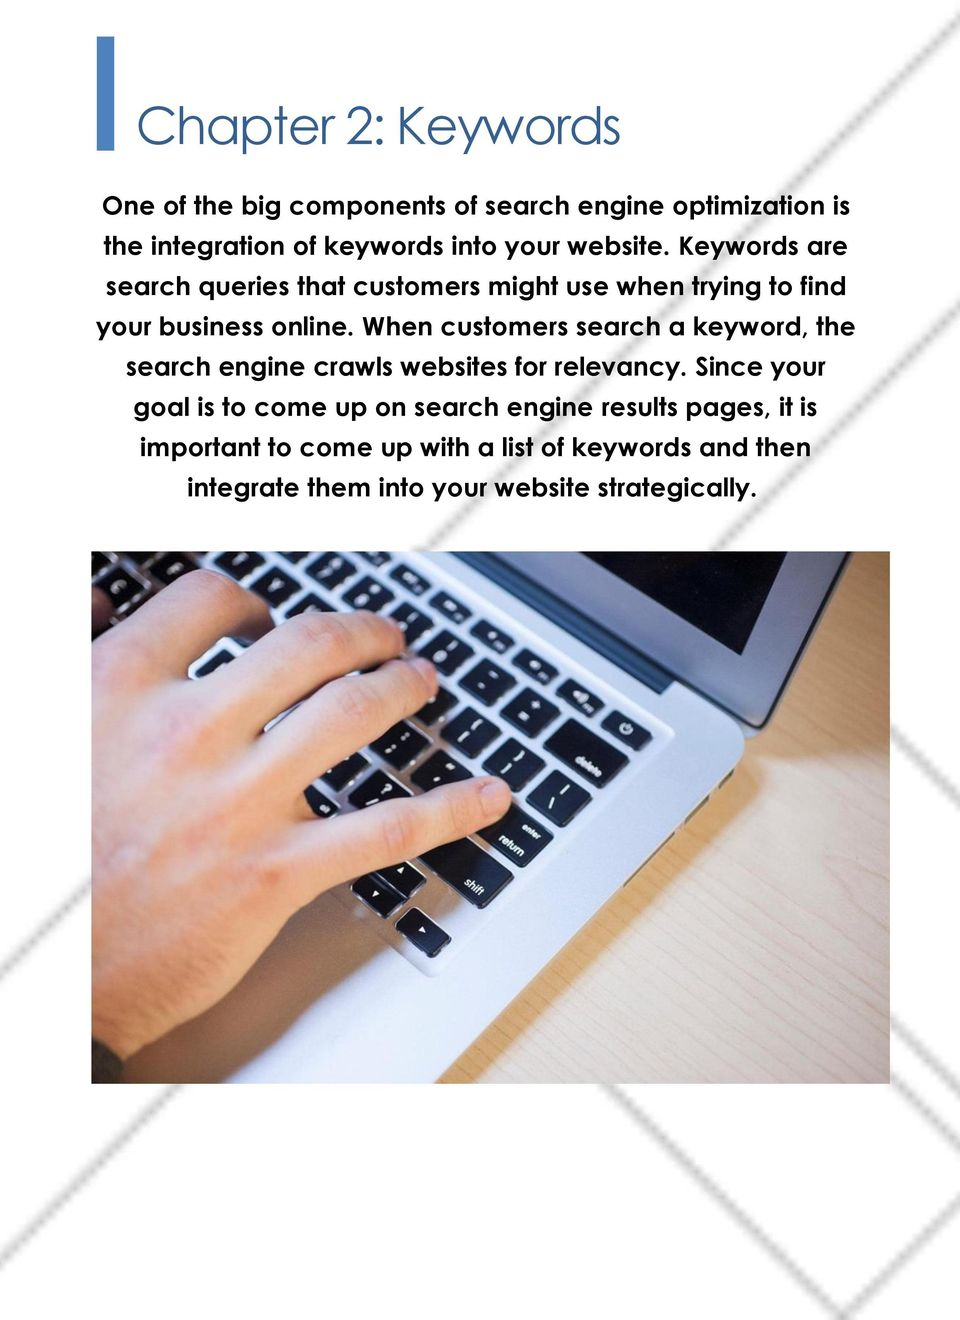 When customers search a keyword, the search engine crawls websites for relevancy.